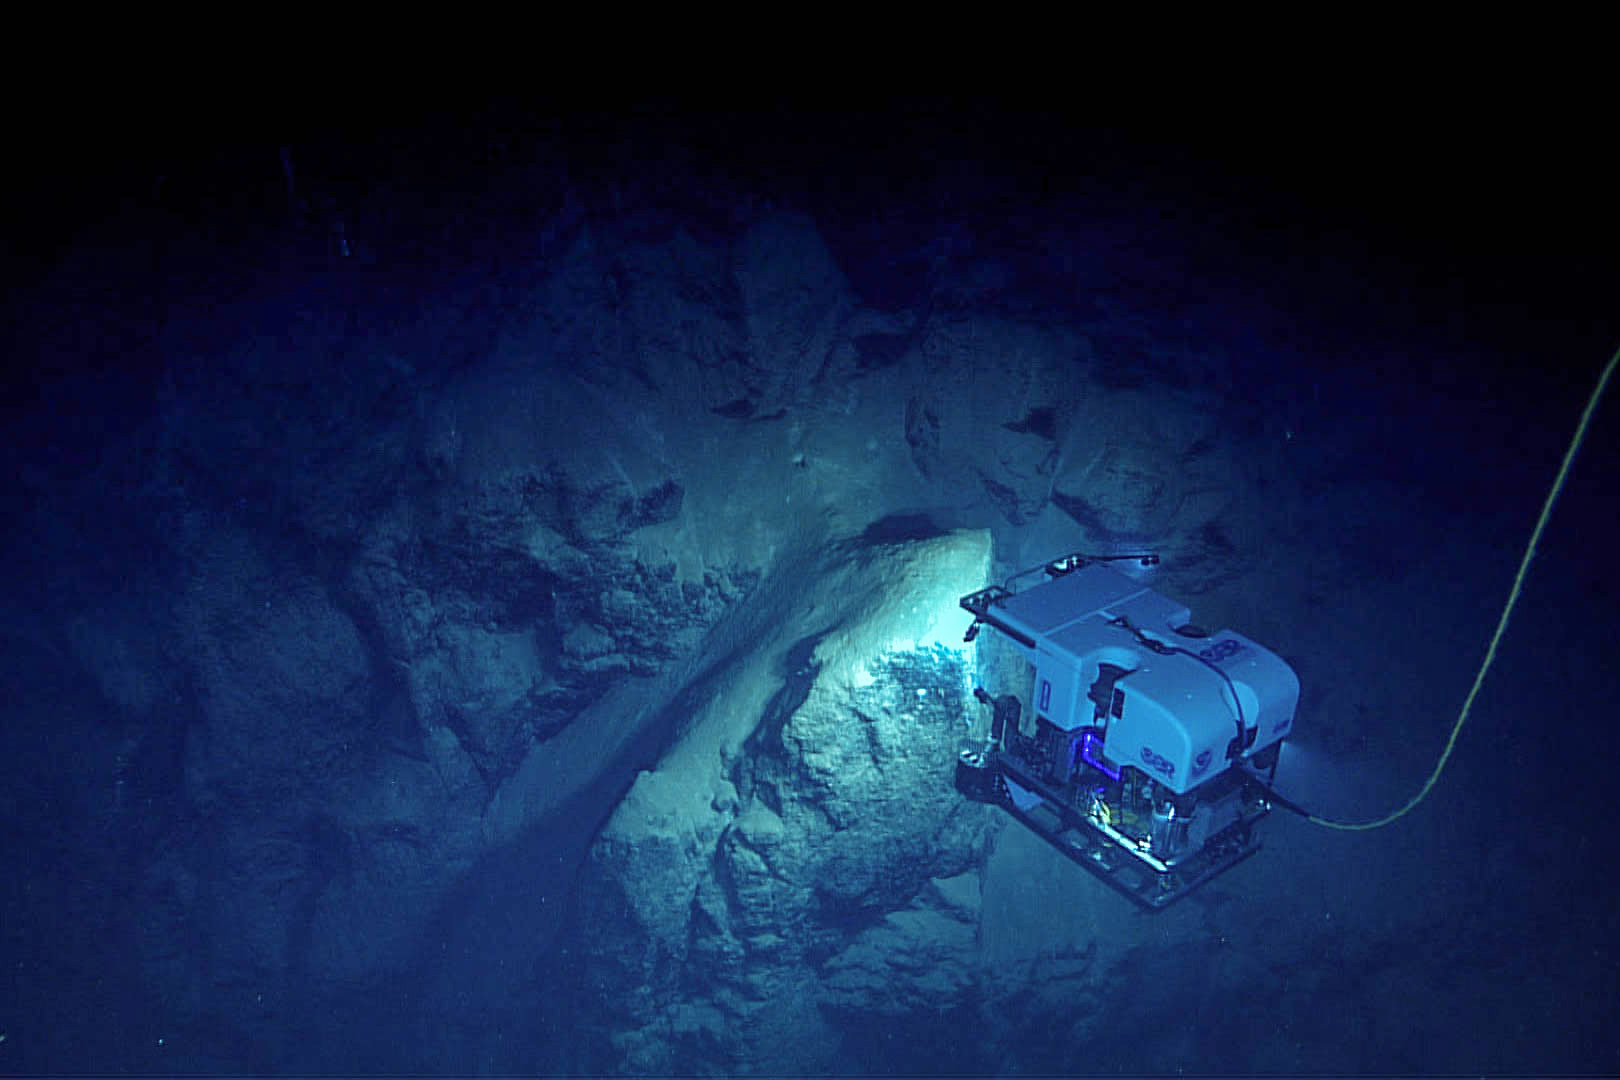 A deep-sea ROV scans an underwater cliff in the Gulf of Mexico.